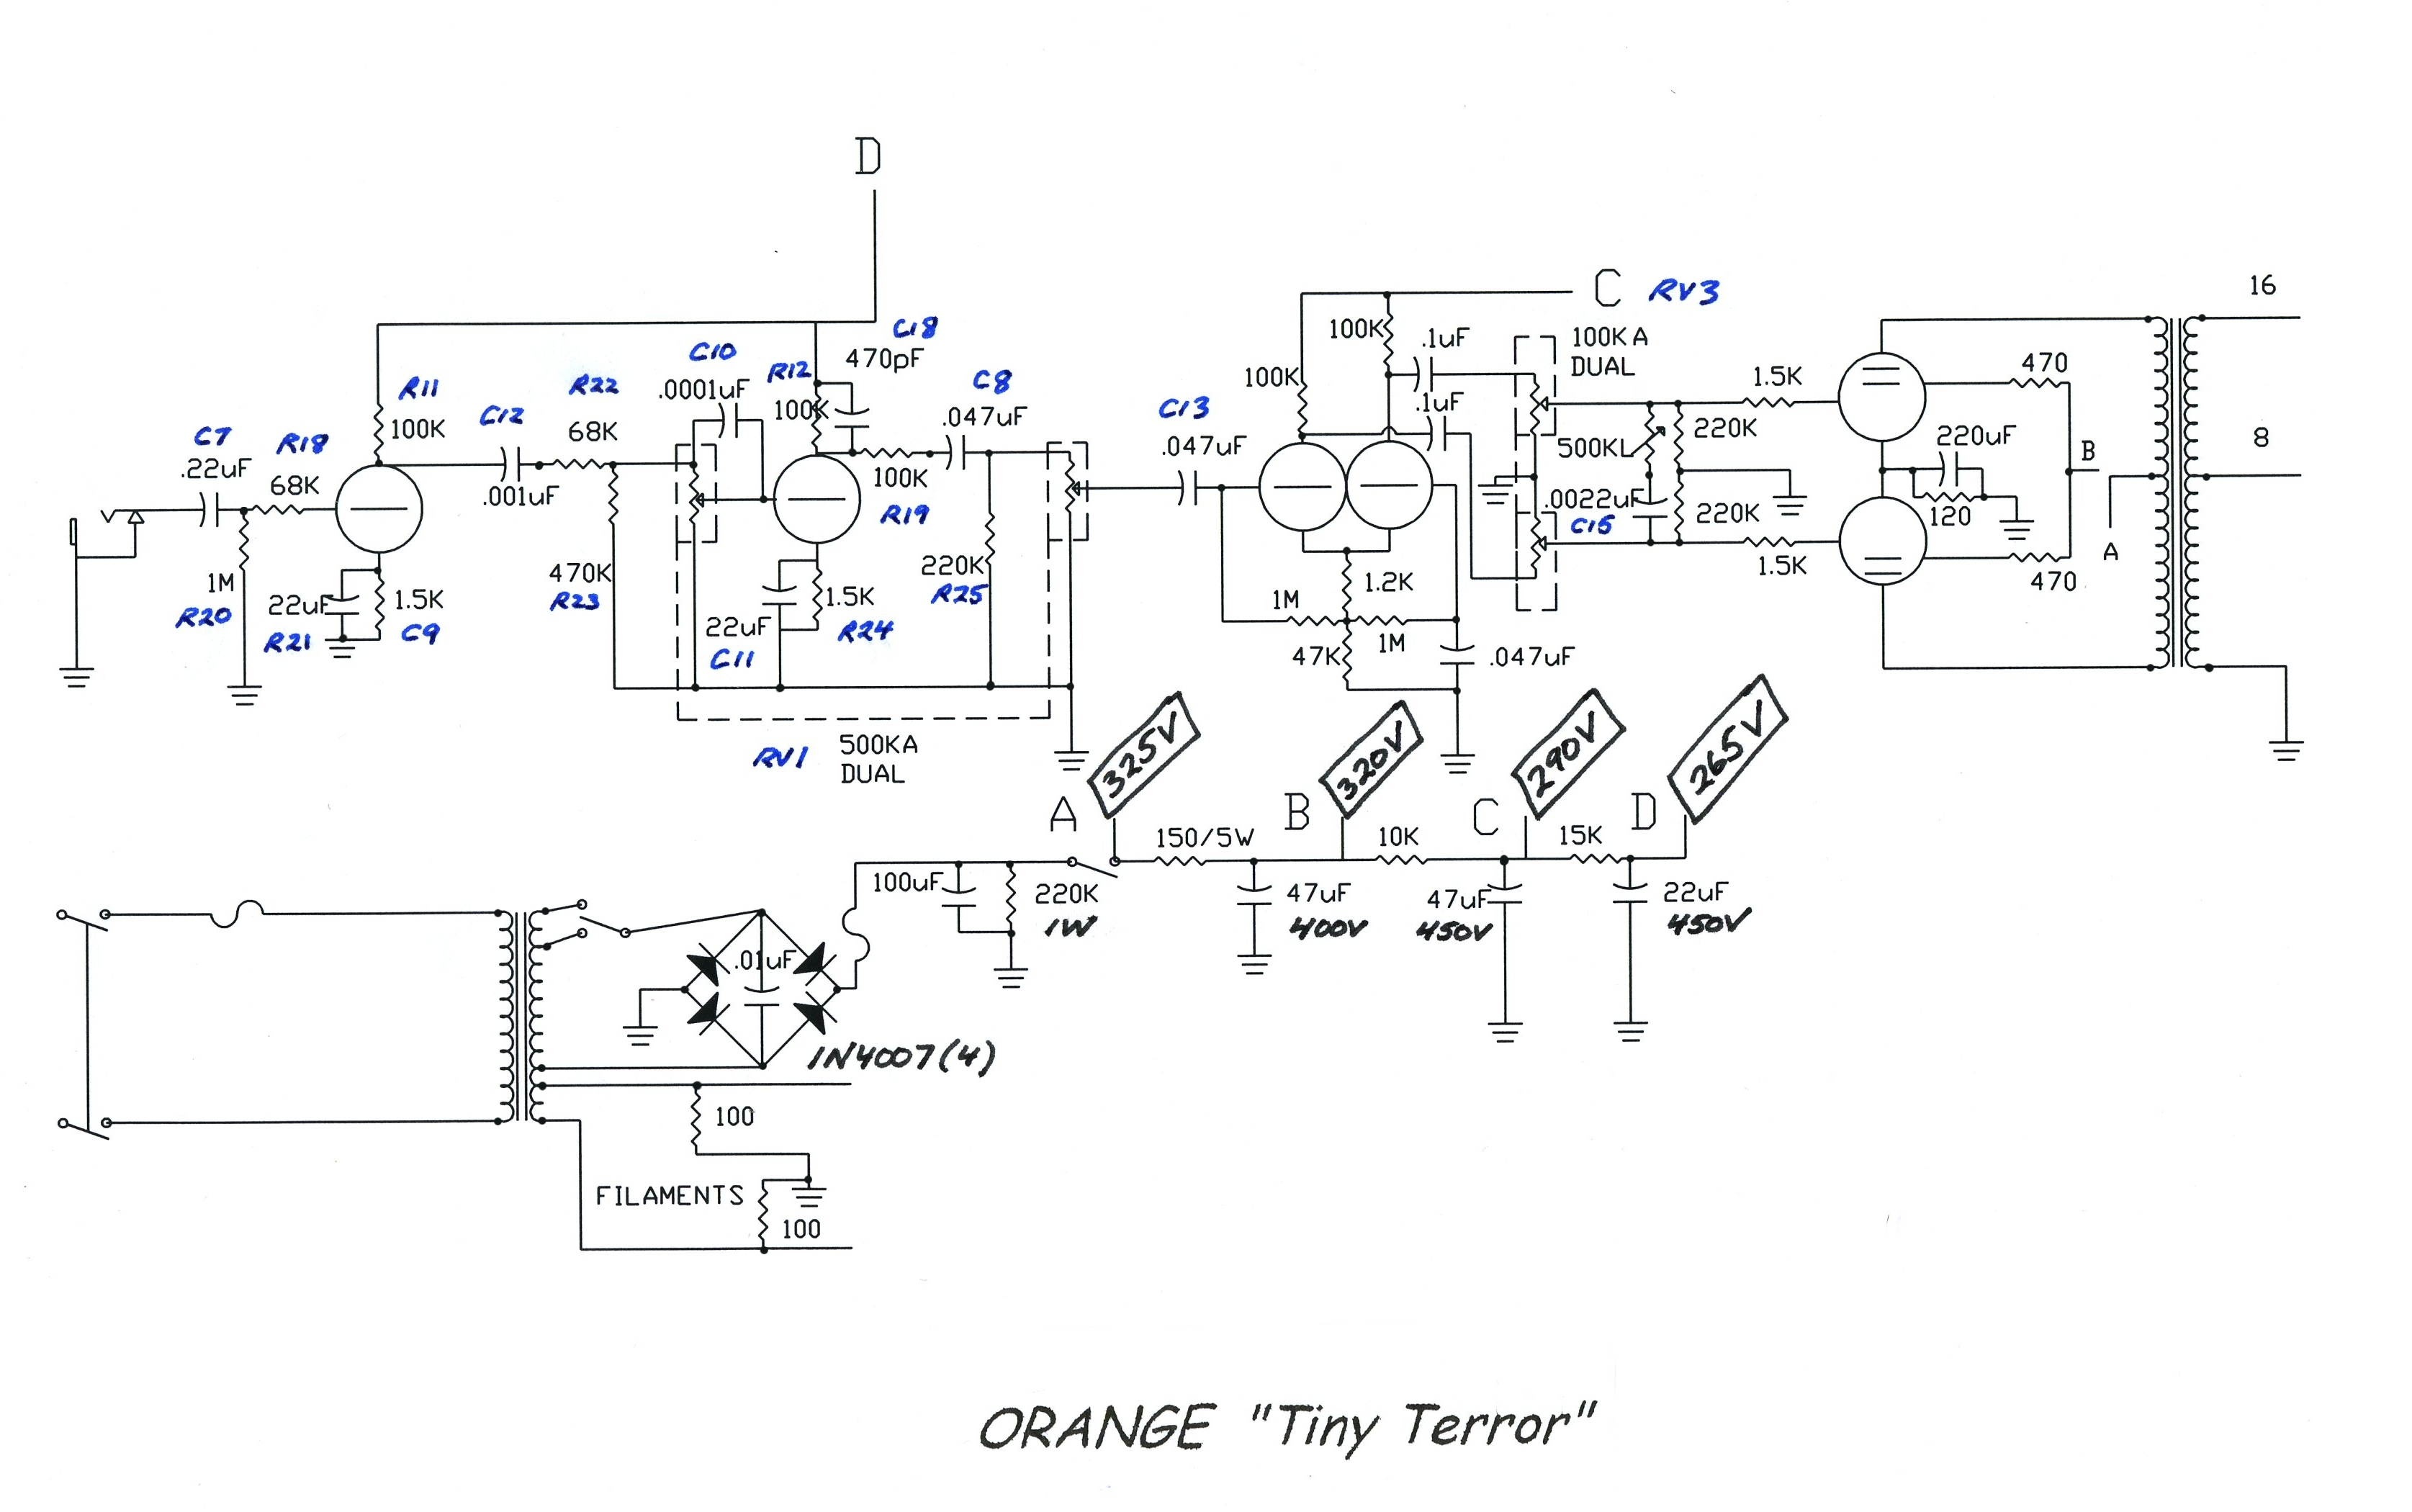 peavey t 60 guitar wiring diagram get free image about wiring diagram